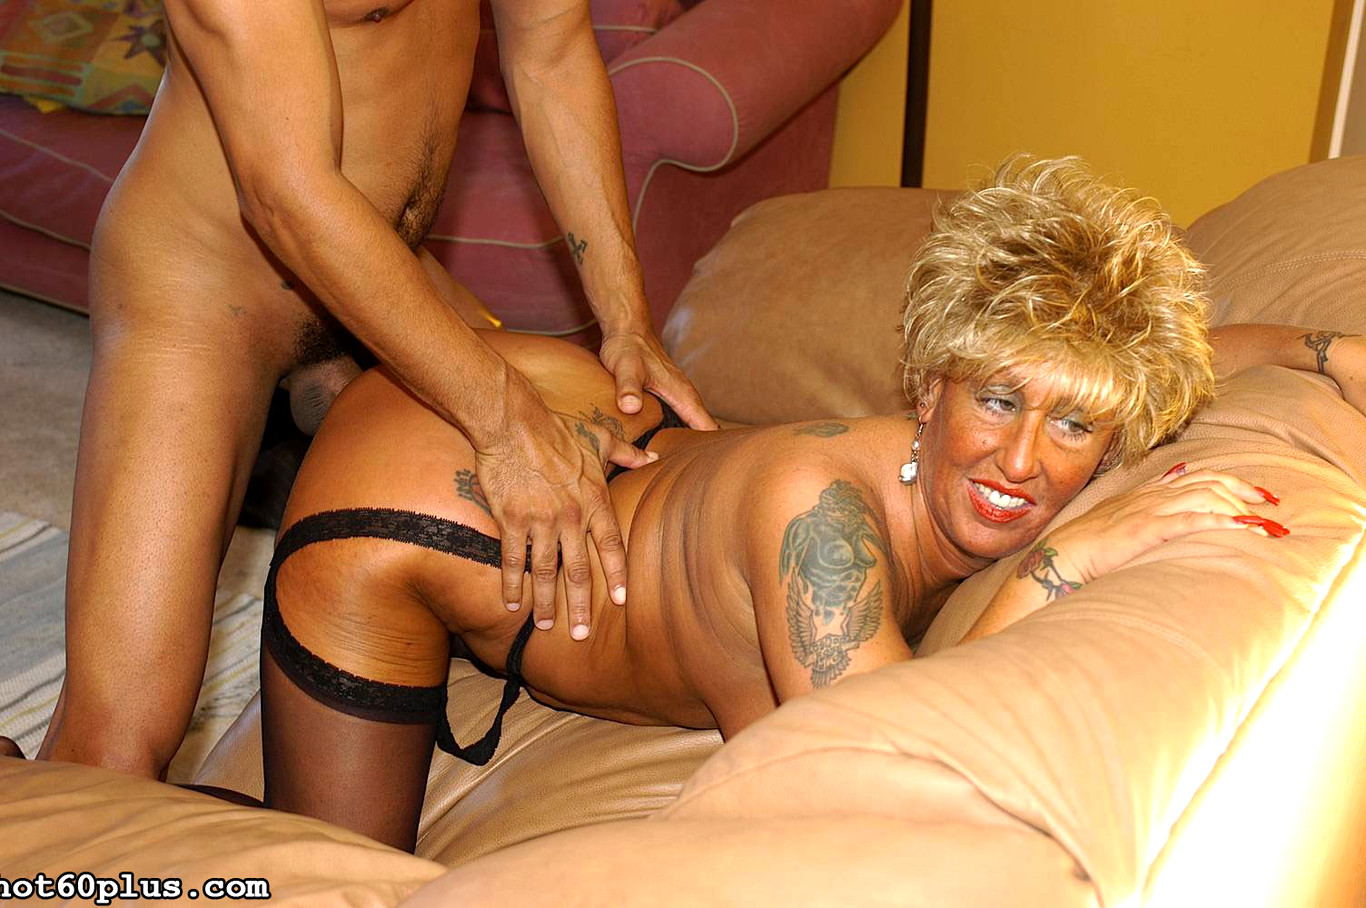 Naughty milf roxy spreads her pussy lips wide for a hardcore fucking